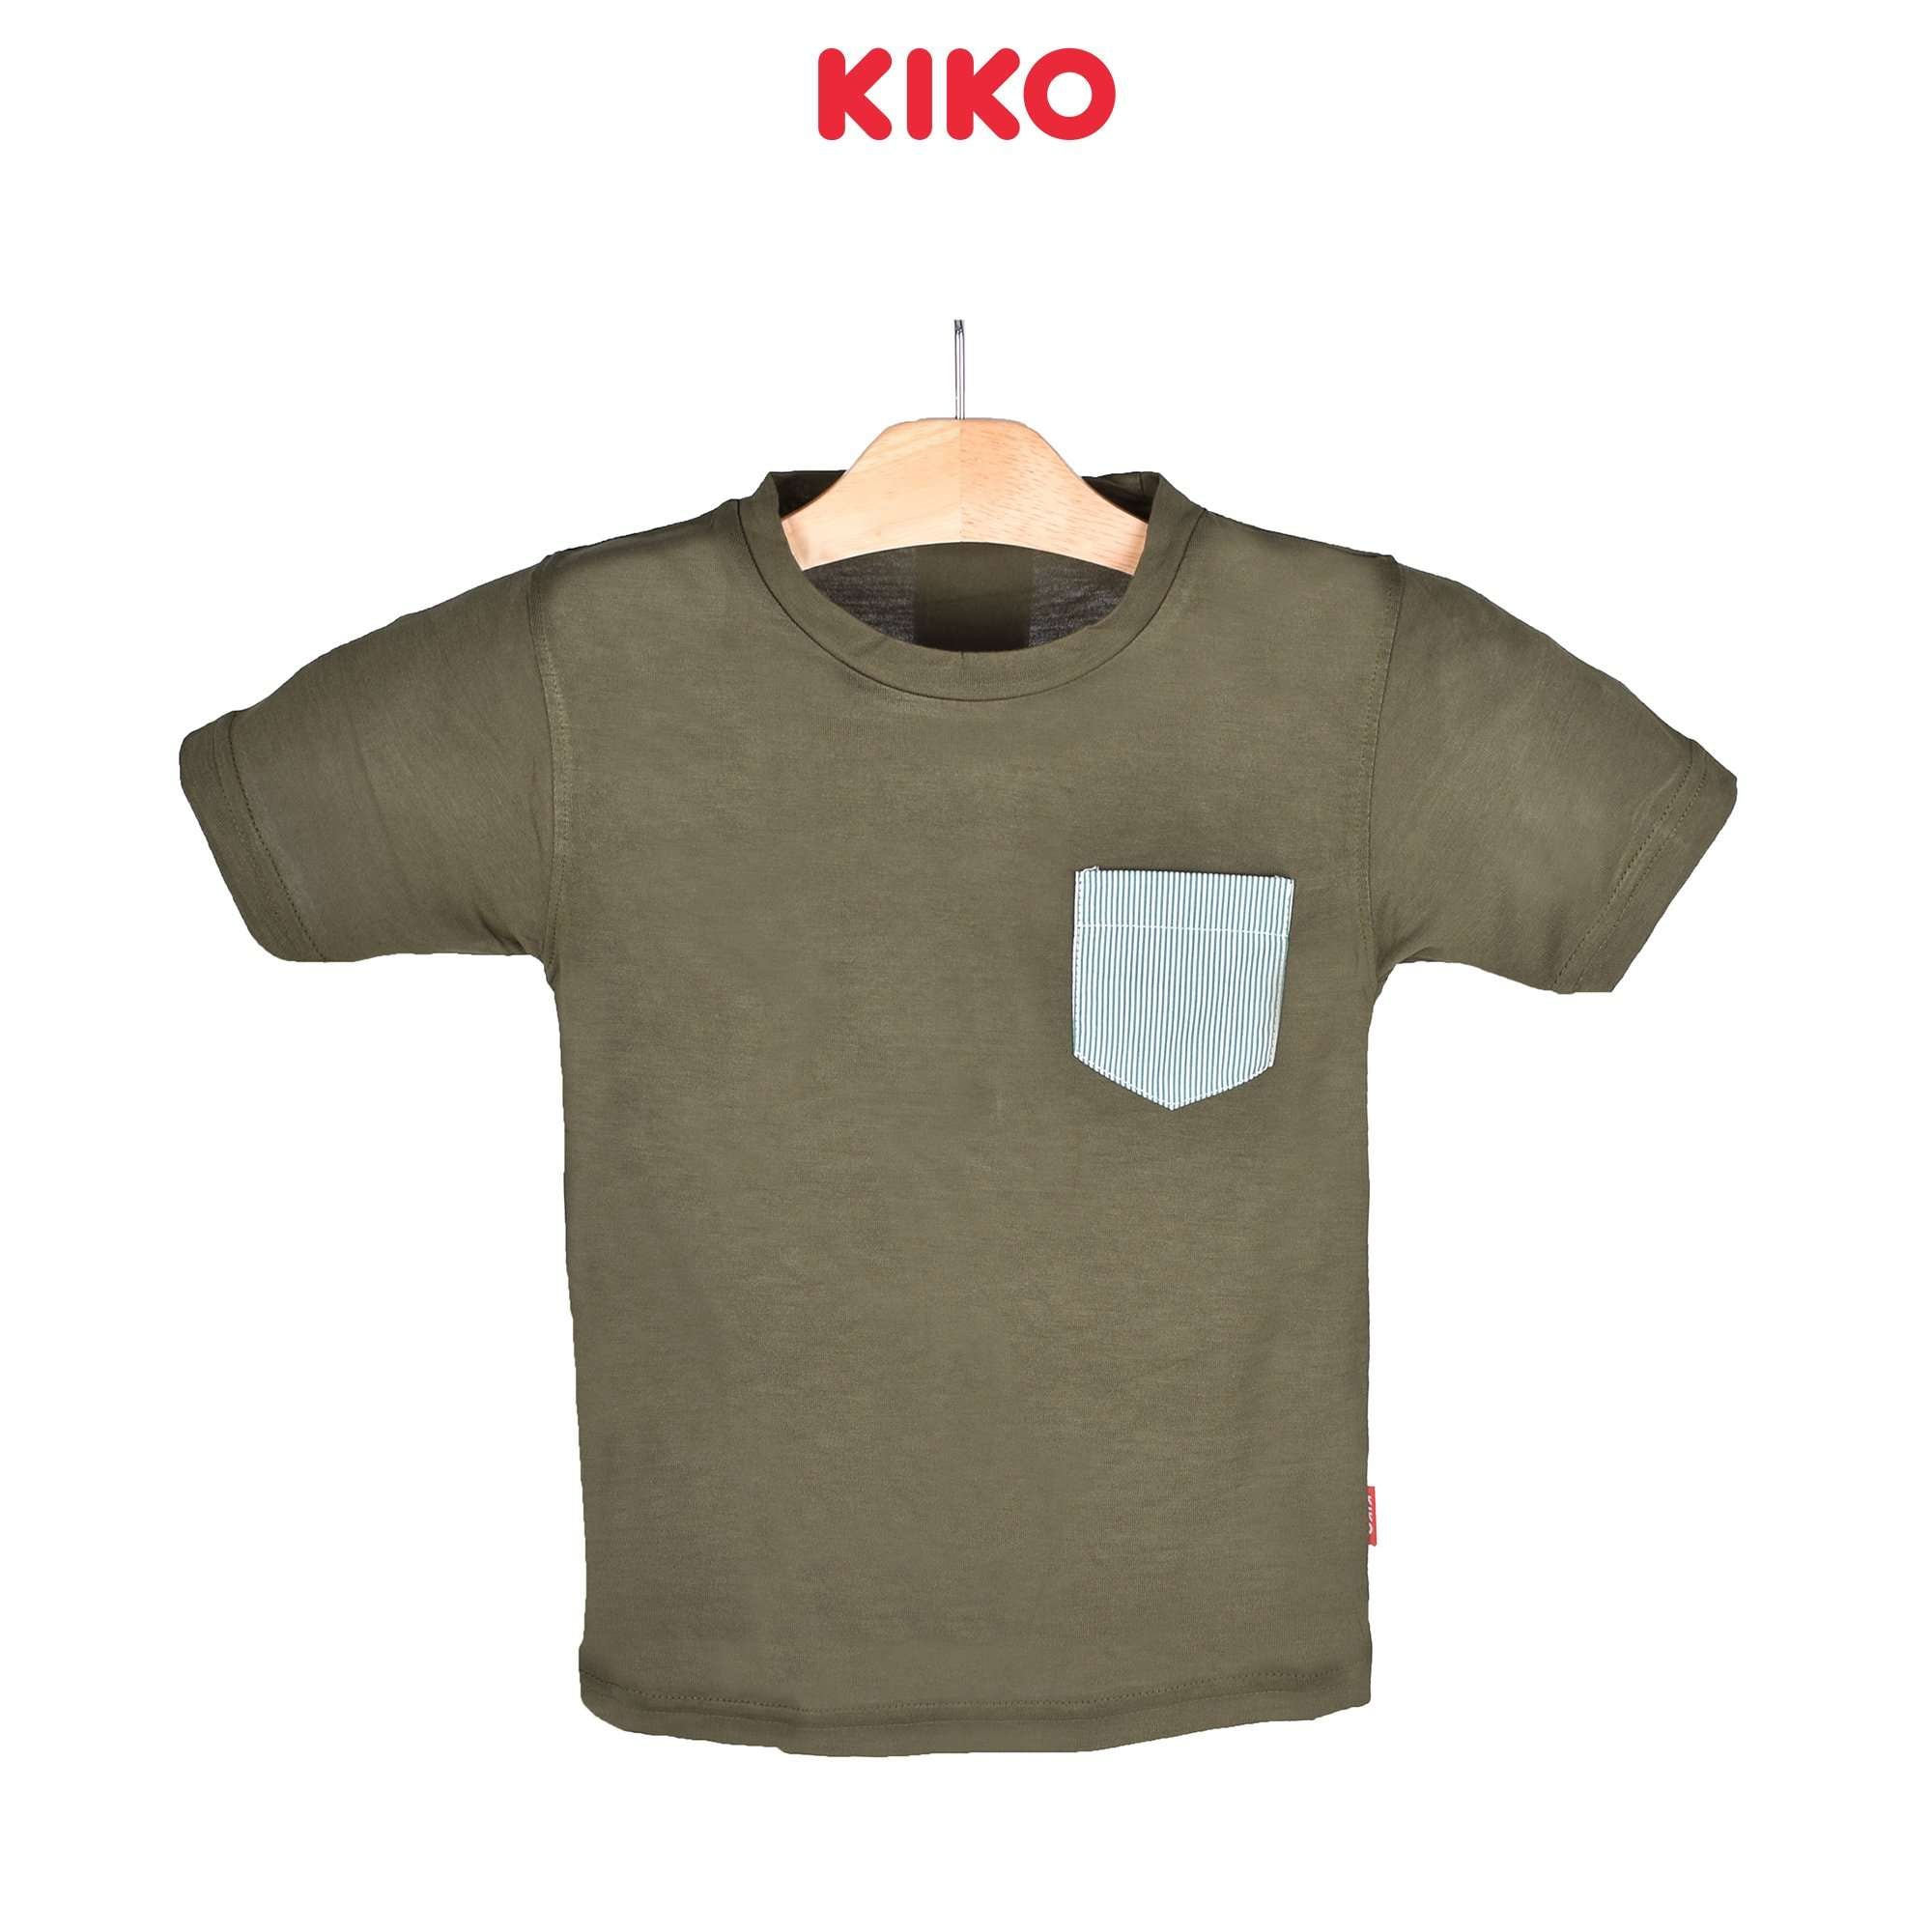 KIKO Boy Short Sleeve Tee - Green 121252-111 : Buy KIKO online at CMG.MY